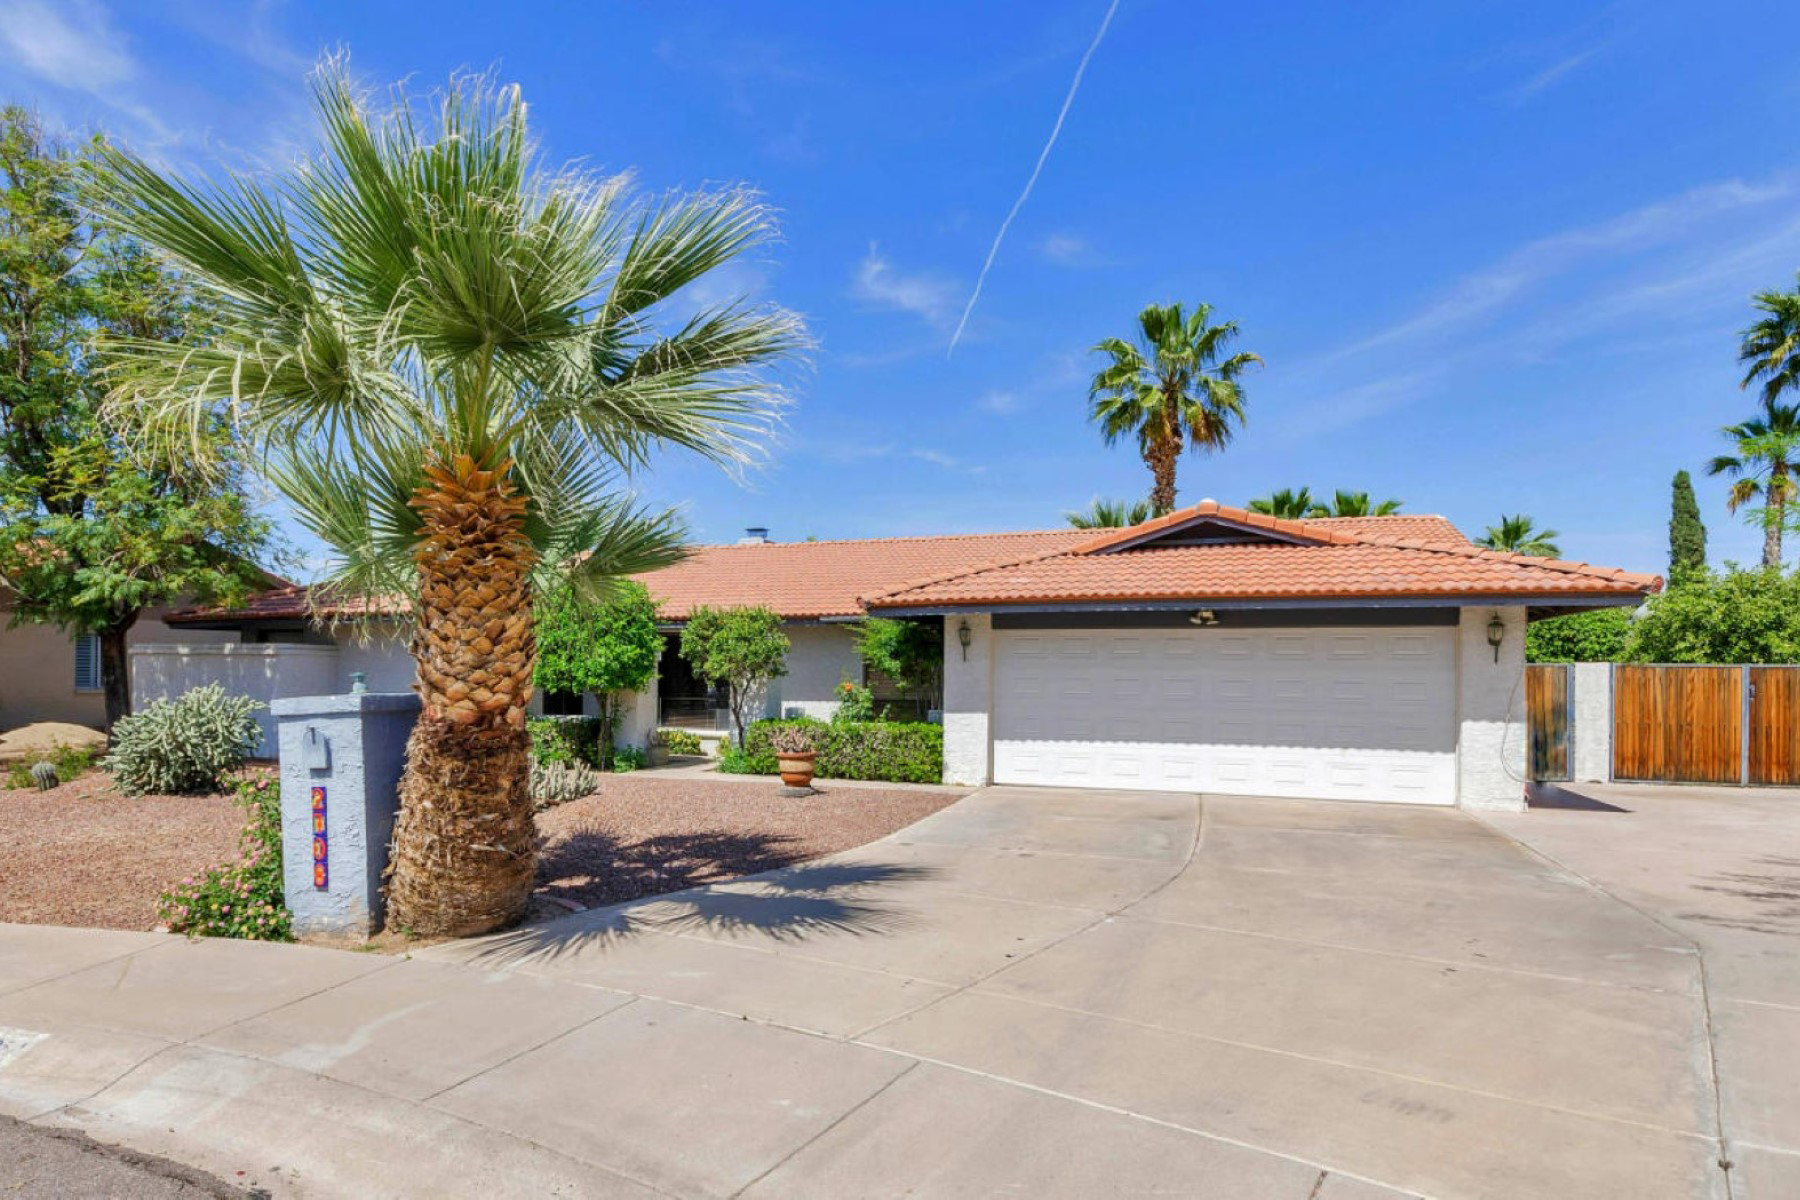 獨棟家庭住宅 為 出售 在 Nicely Updated Phoenix Home in Fabulous Location 2708 E Sunnyside Drive Phoenix, 亞利桑那州 85028 美國